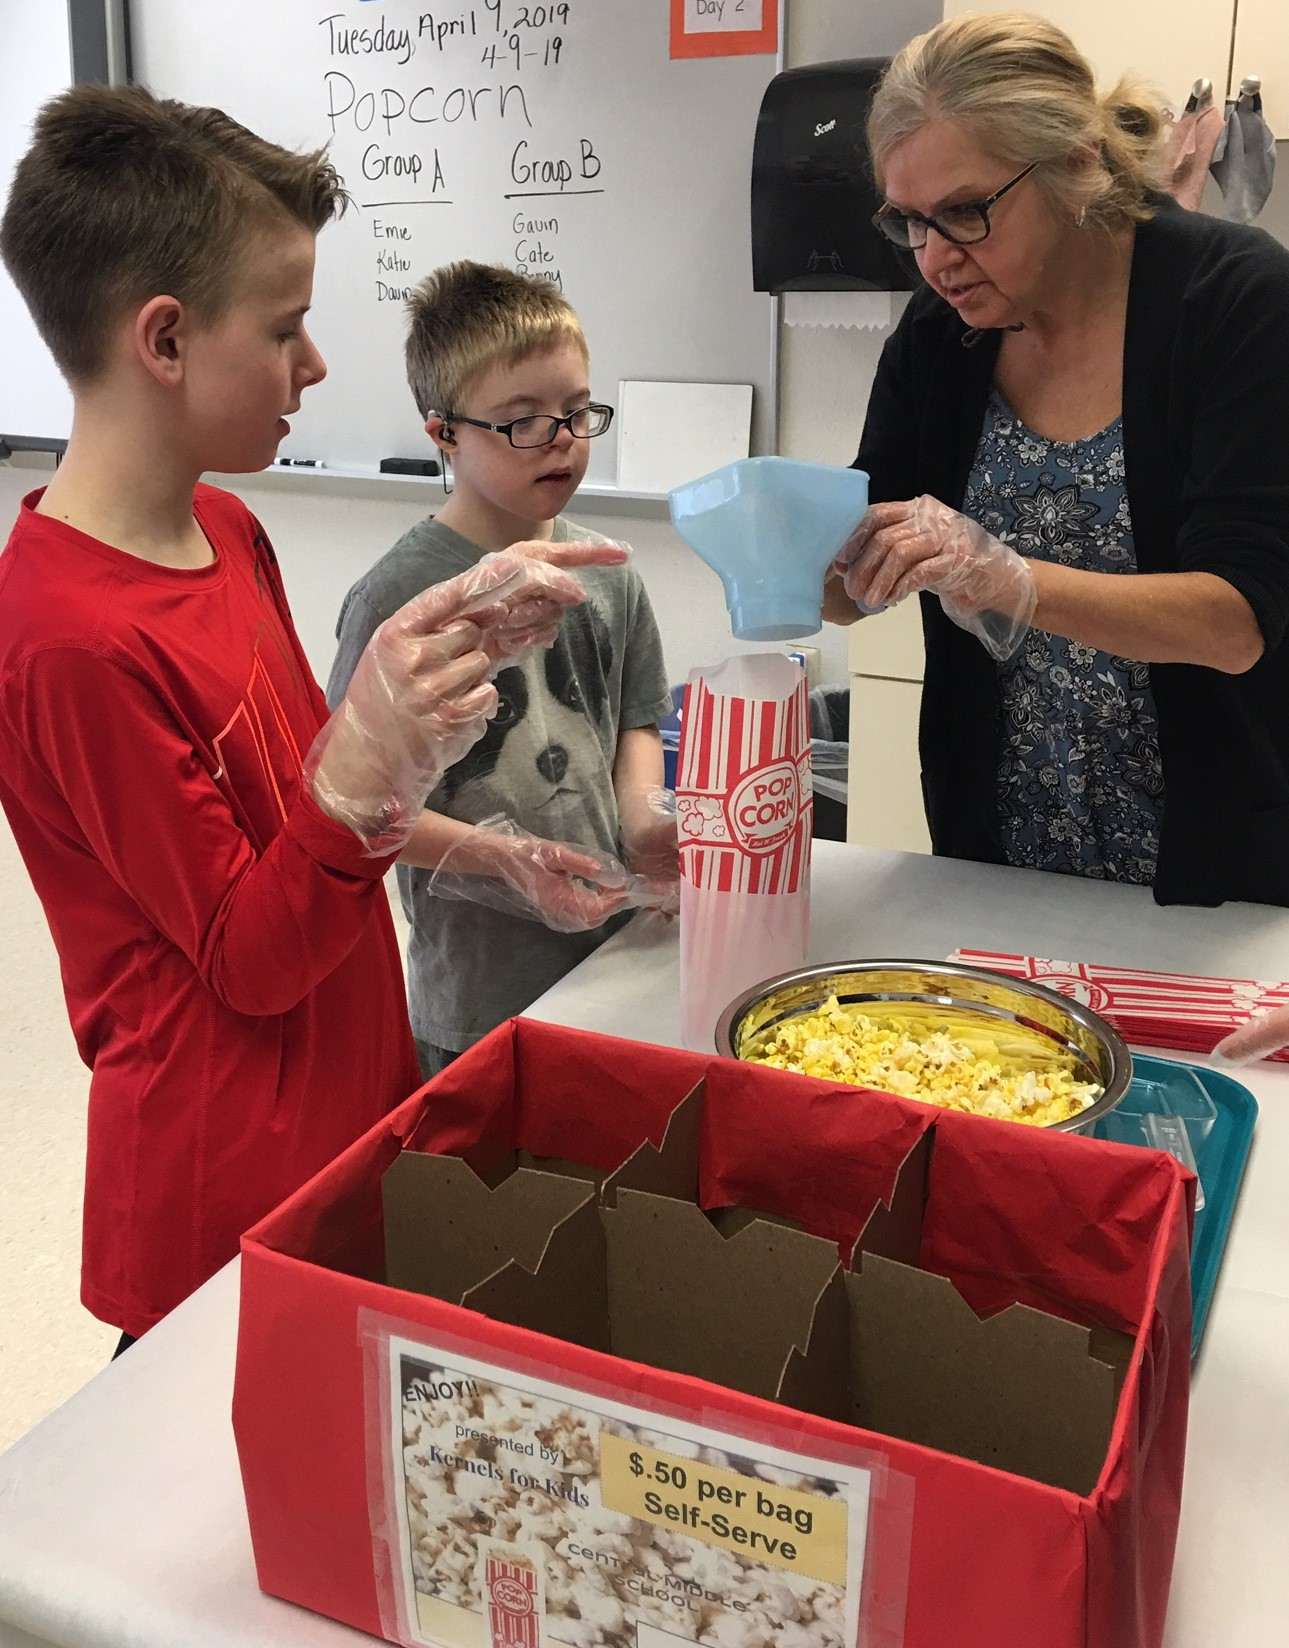 Lisa Olson (teacher) helping students prepare to bag popcorn. 4.8.19 clearance on record. - Copy.jpg